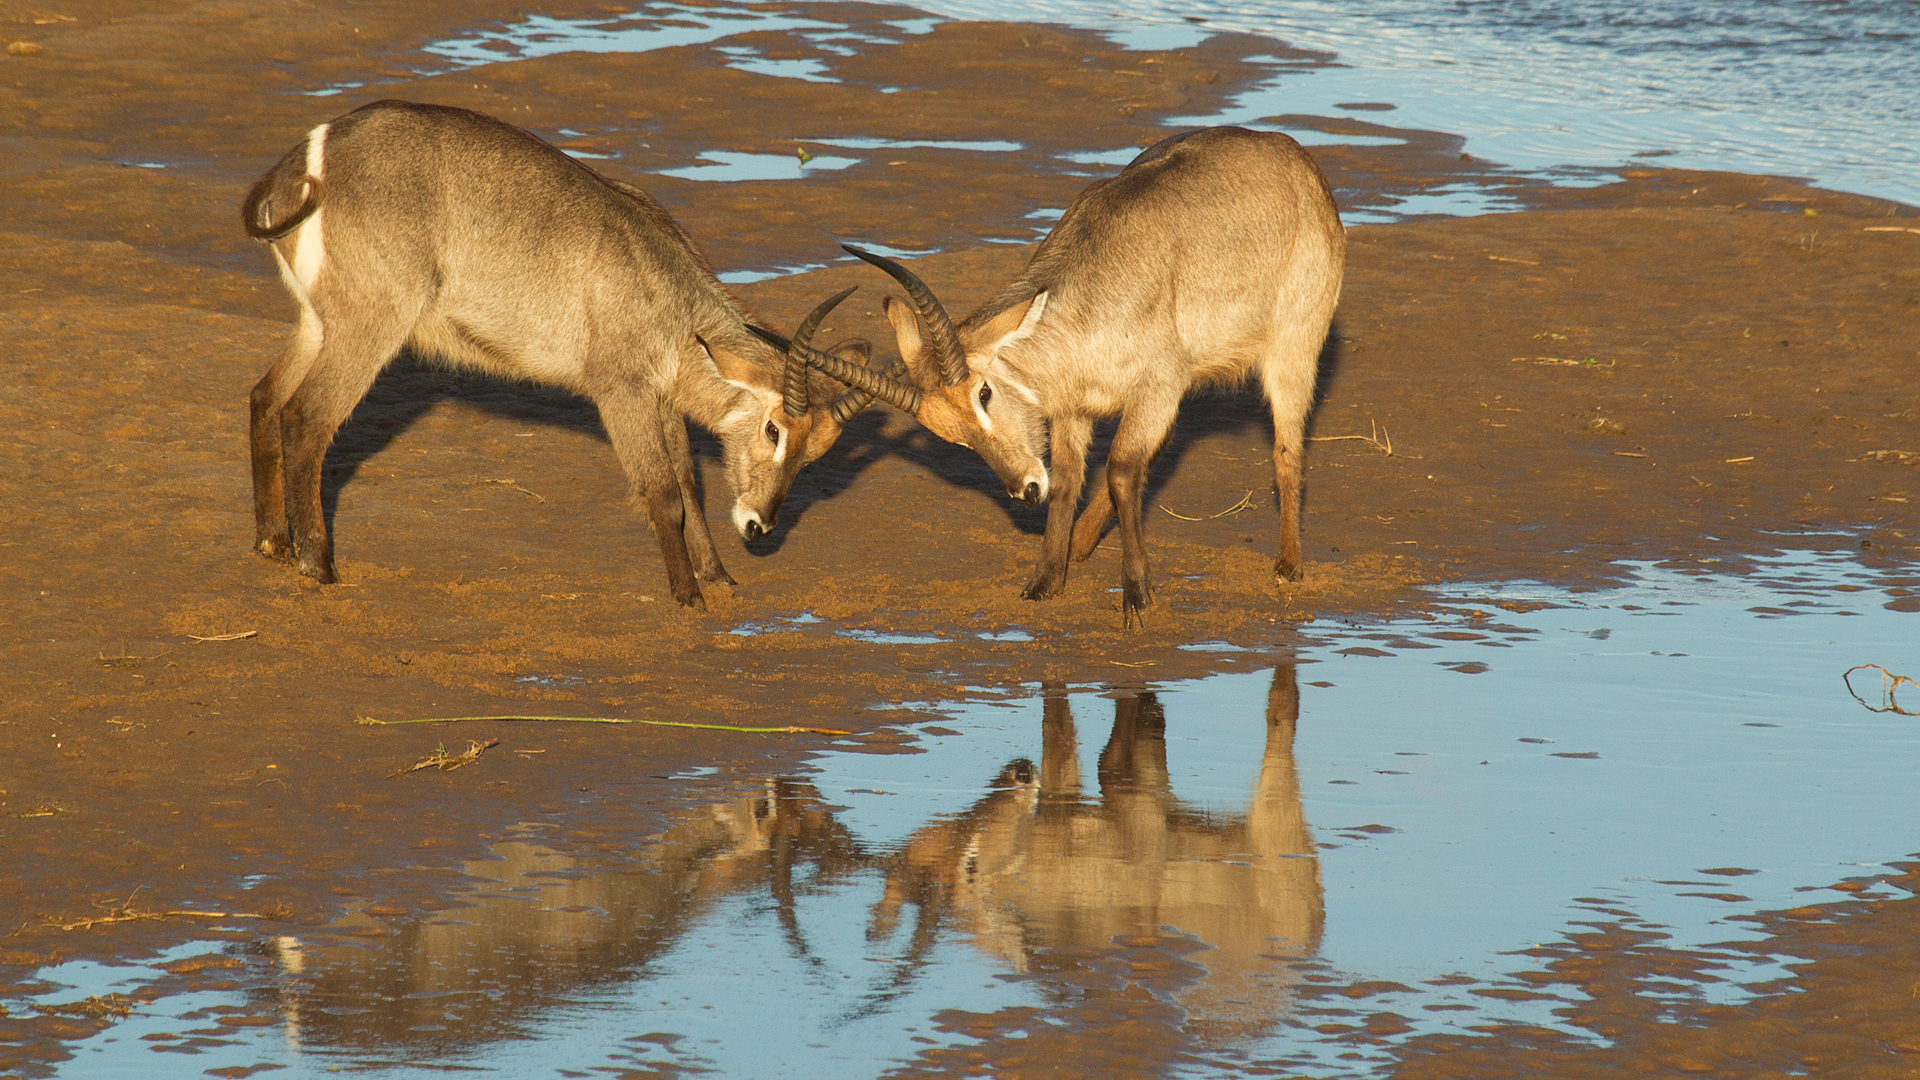 Waterbuck reflections